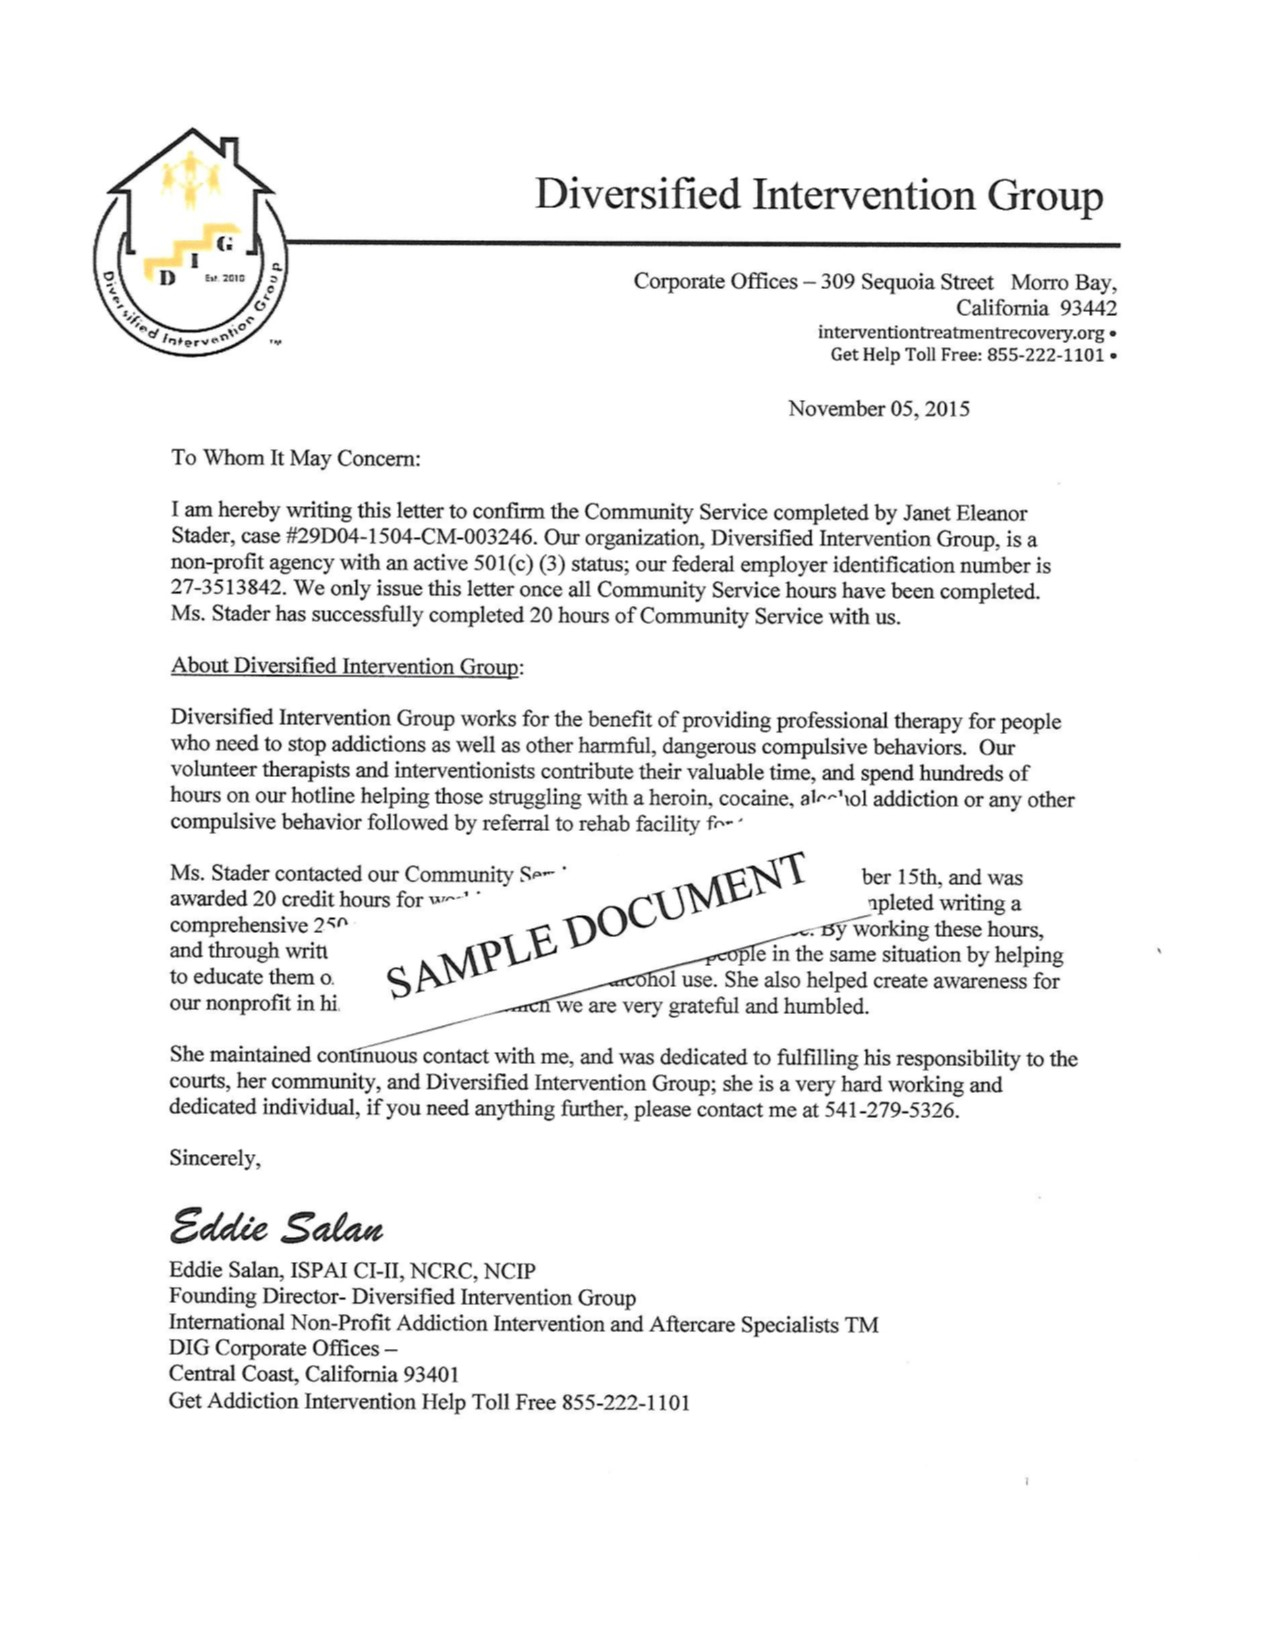 Template for Community Service Hours Letter - Free Worksheets Library Download and Print Worksheets